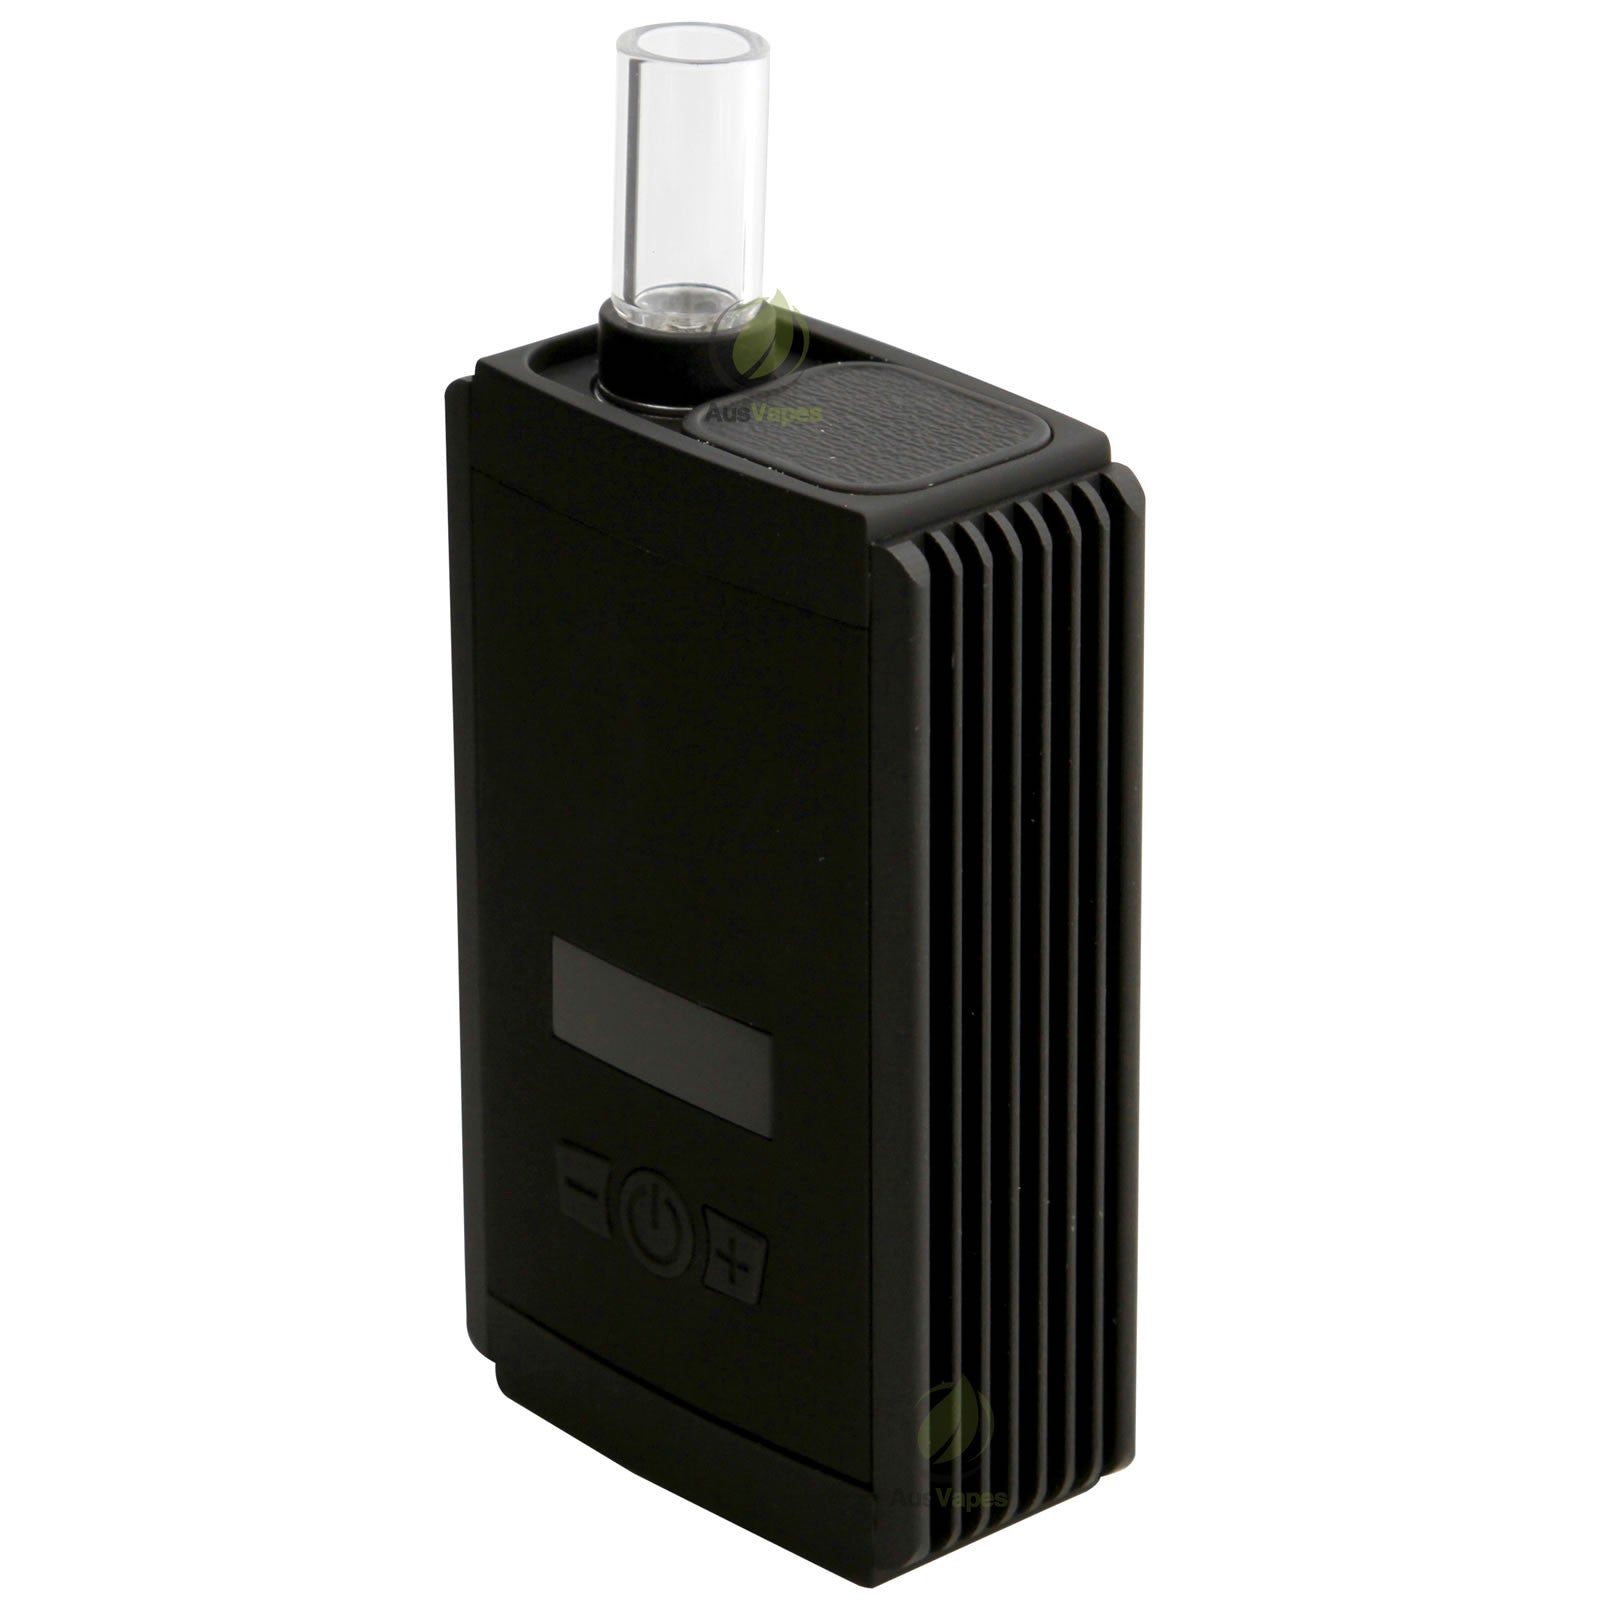 DISCONTINUED Odin Vaporizer